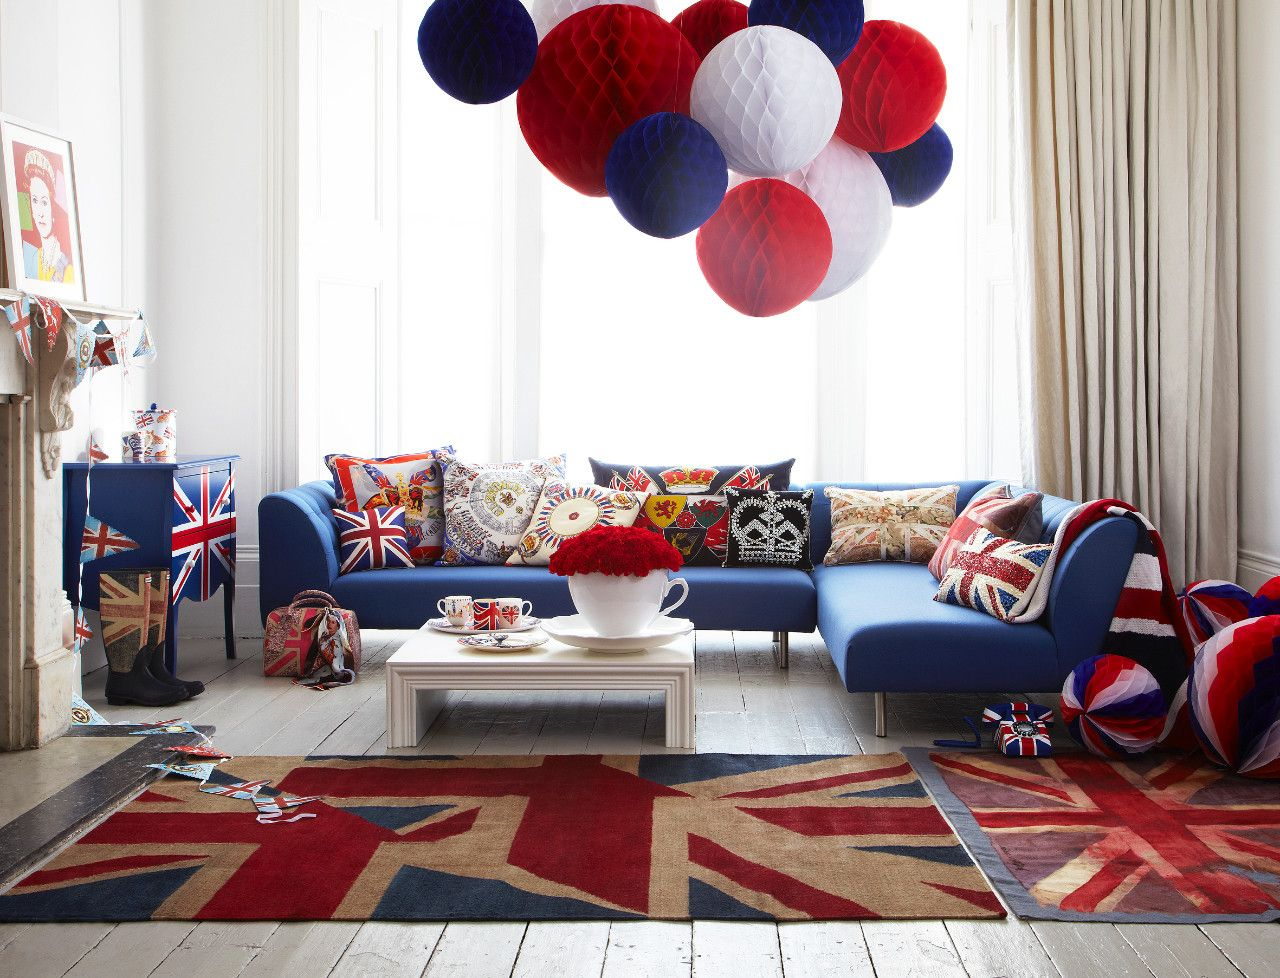 homes: jubilee jubilation - interactive | british themed bedrooms, british decor, room london